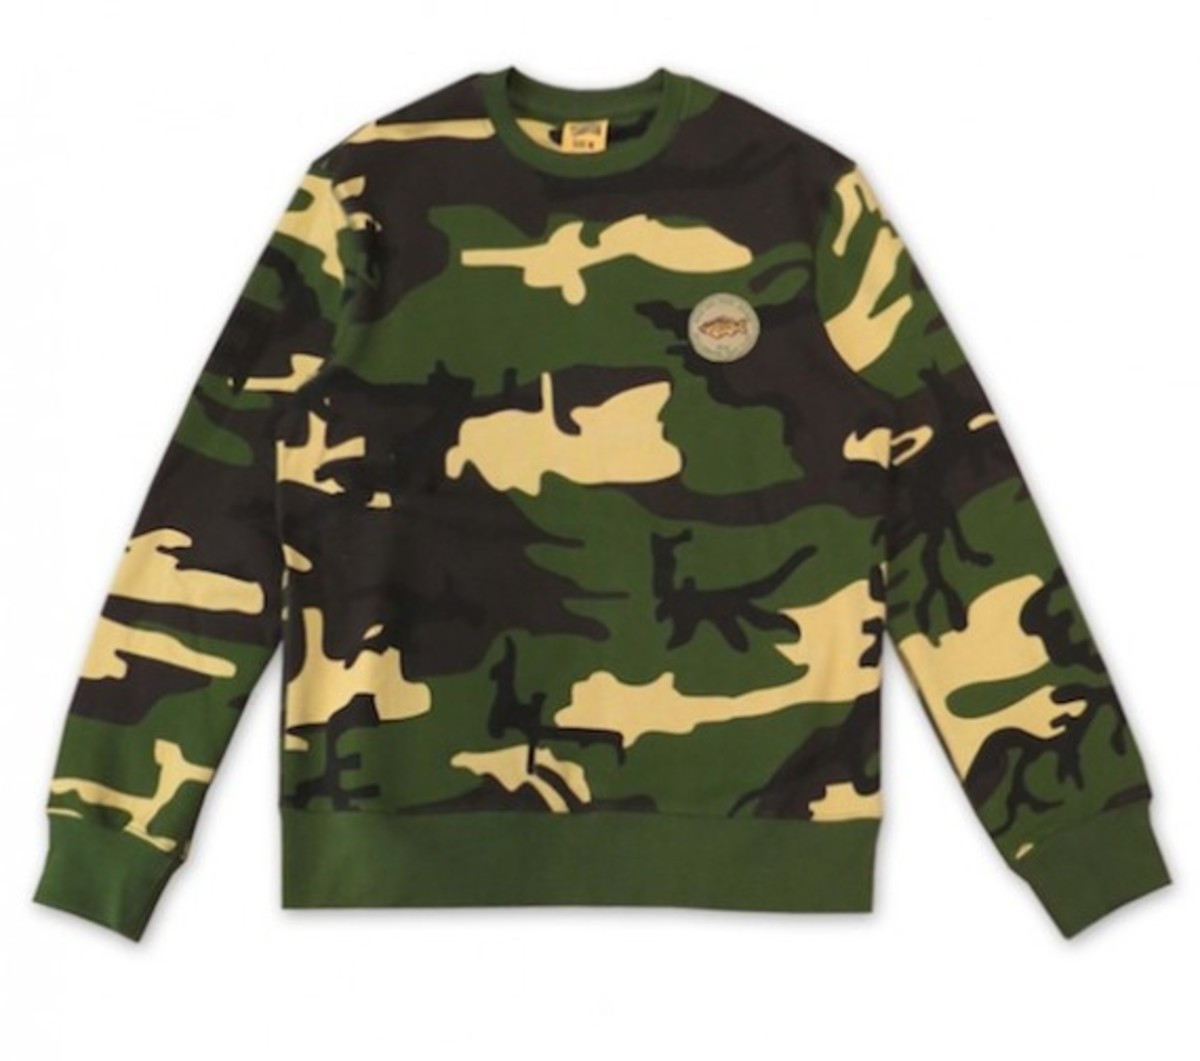 billionaire-boys-club-august-2012-new-releases-11